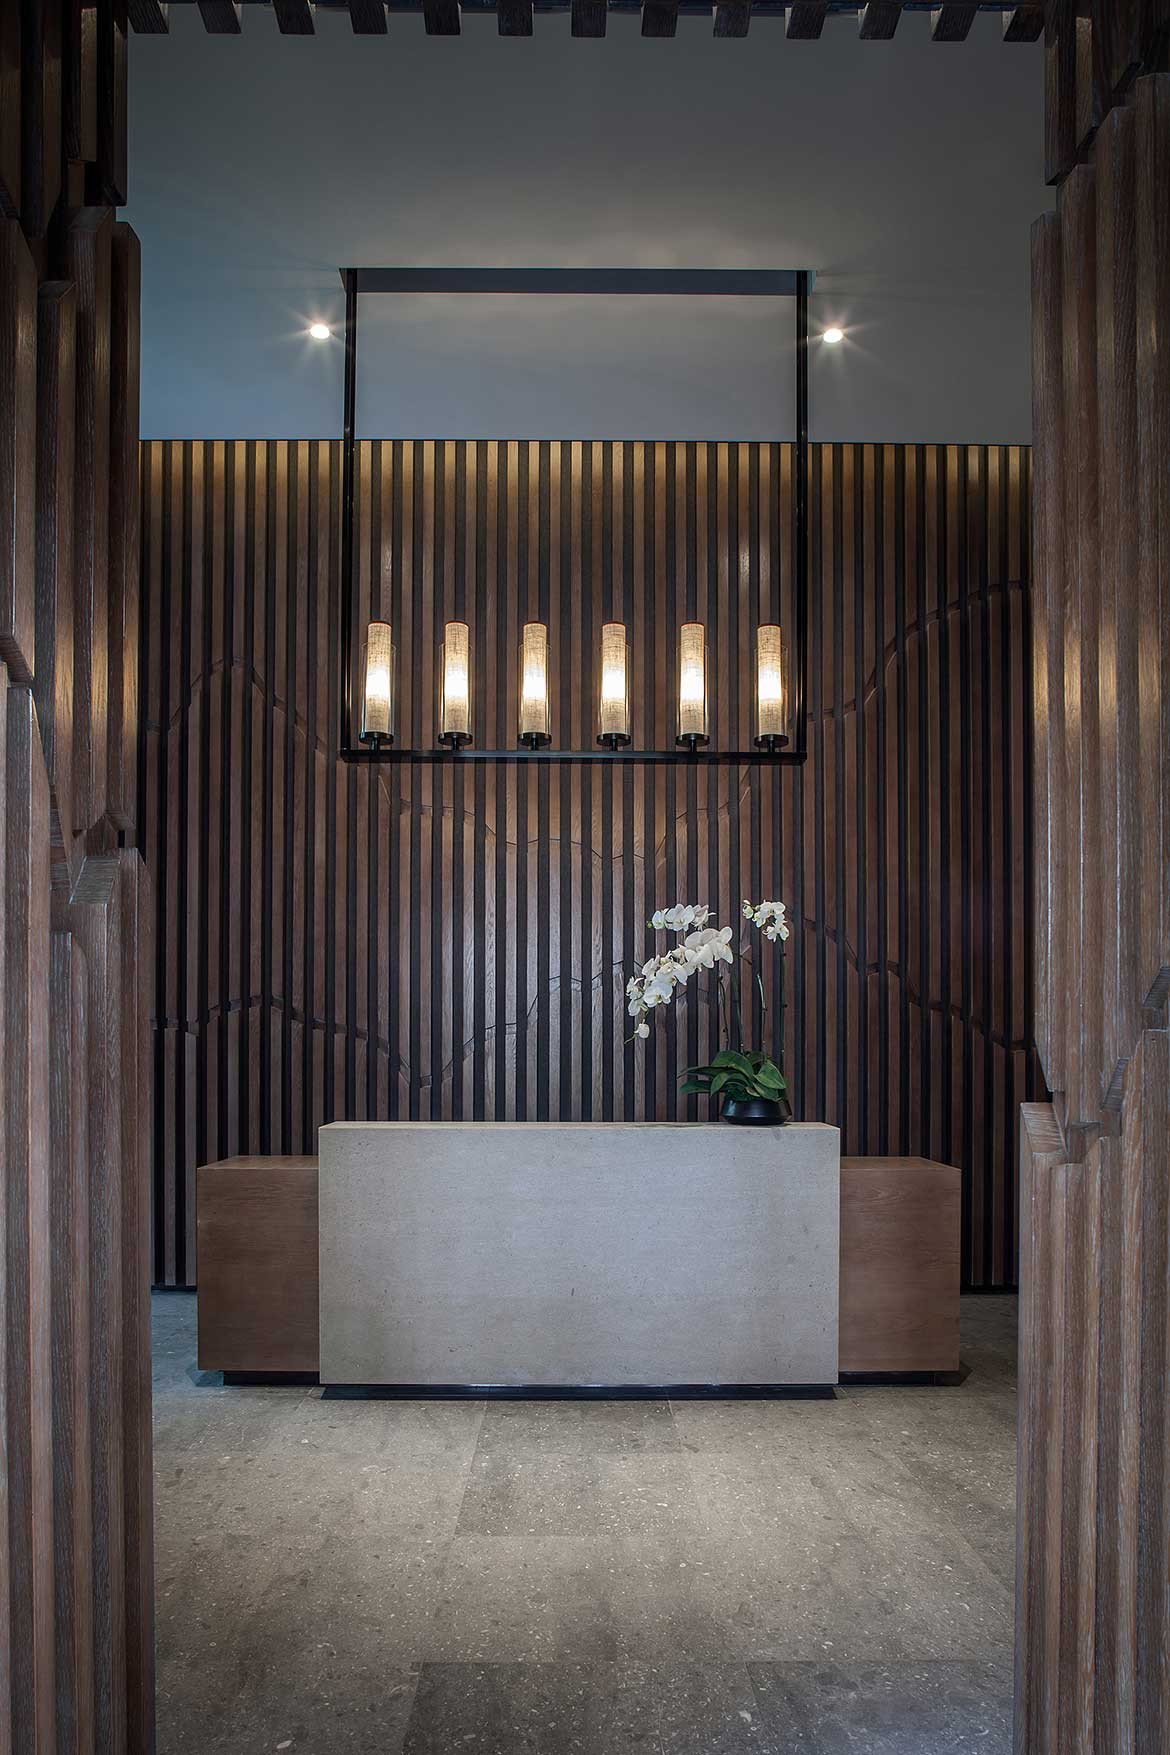 ao Hua Yuan Tea House CL3 Architects cc Nirut Benjabanpot reception